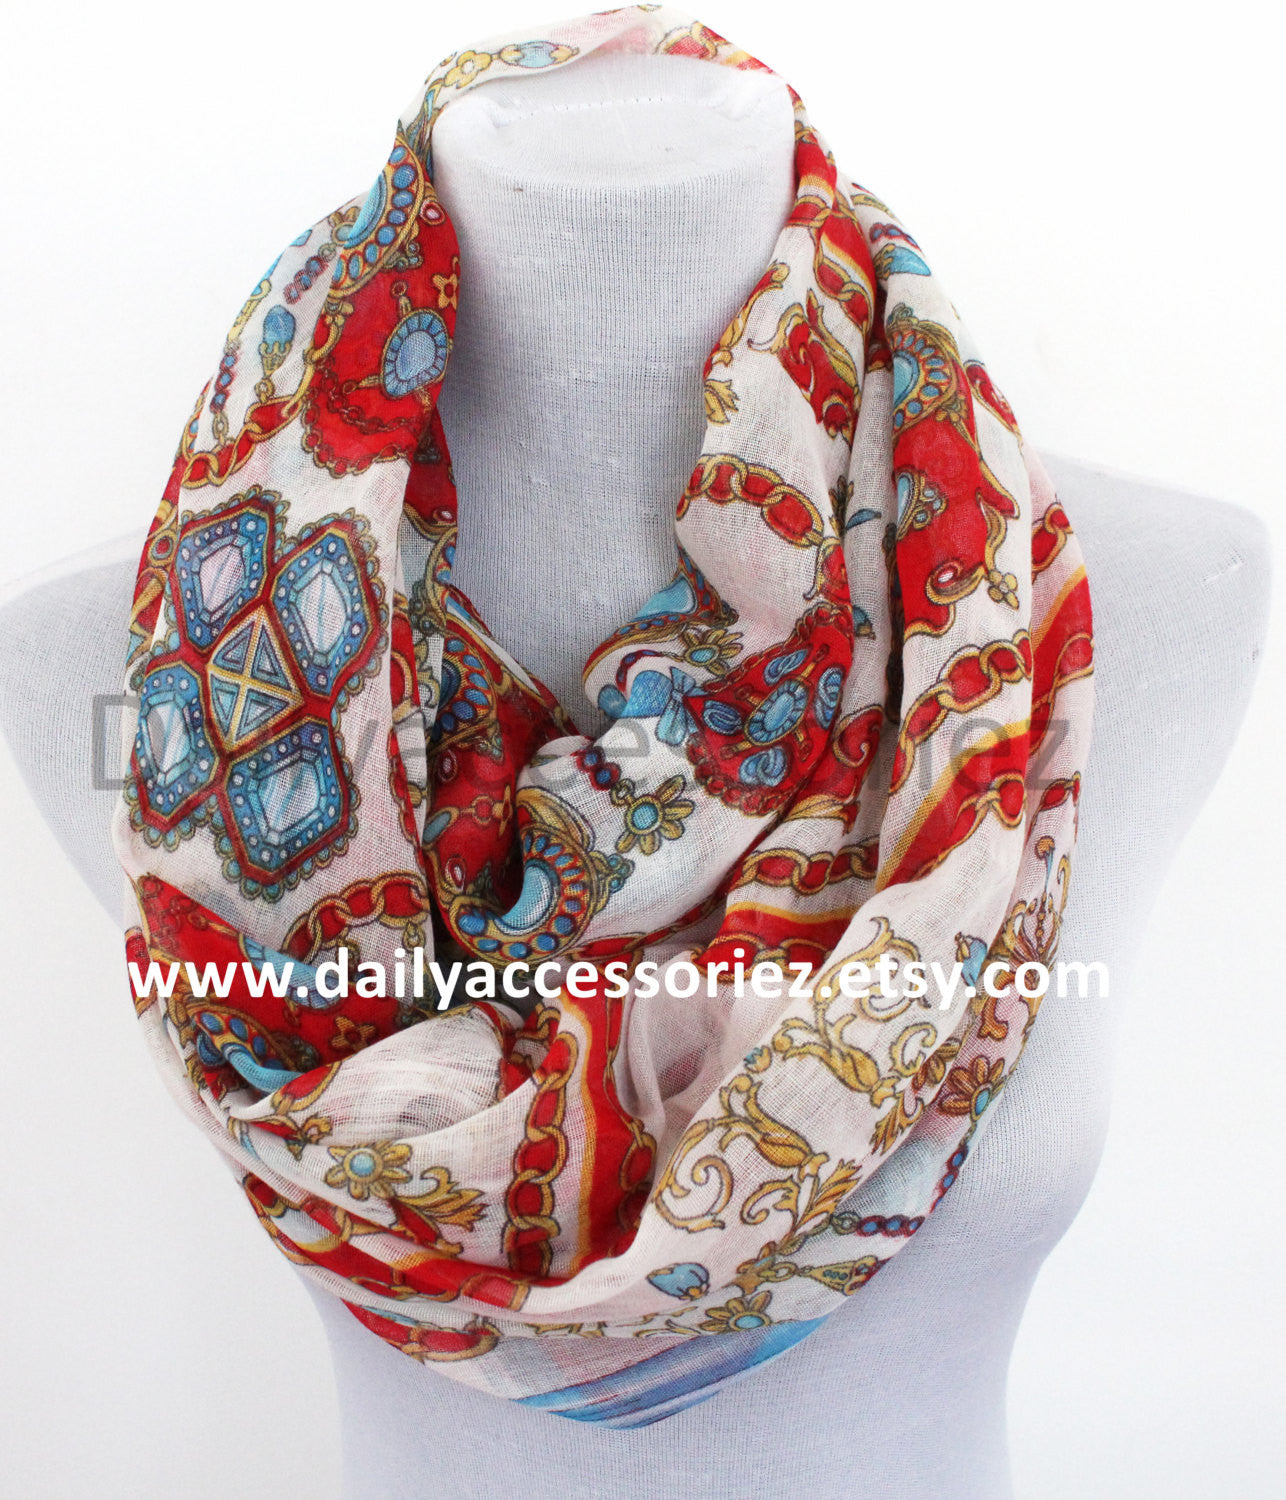 Red Crystal Print Infinity Scarf - Bean Concept - Etsy